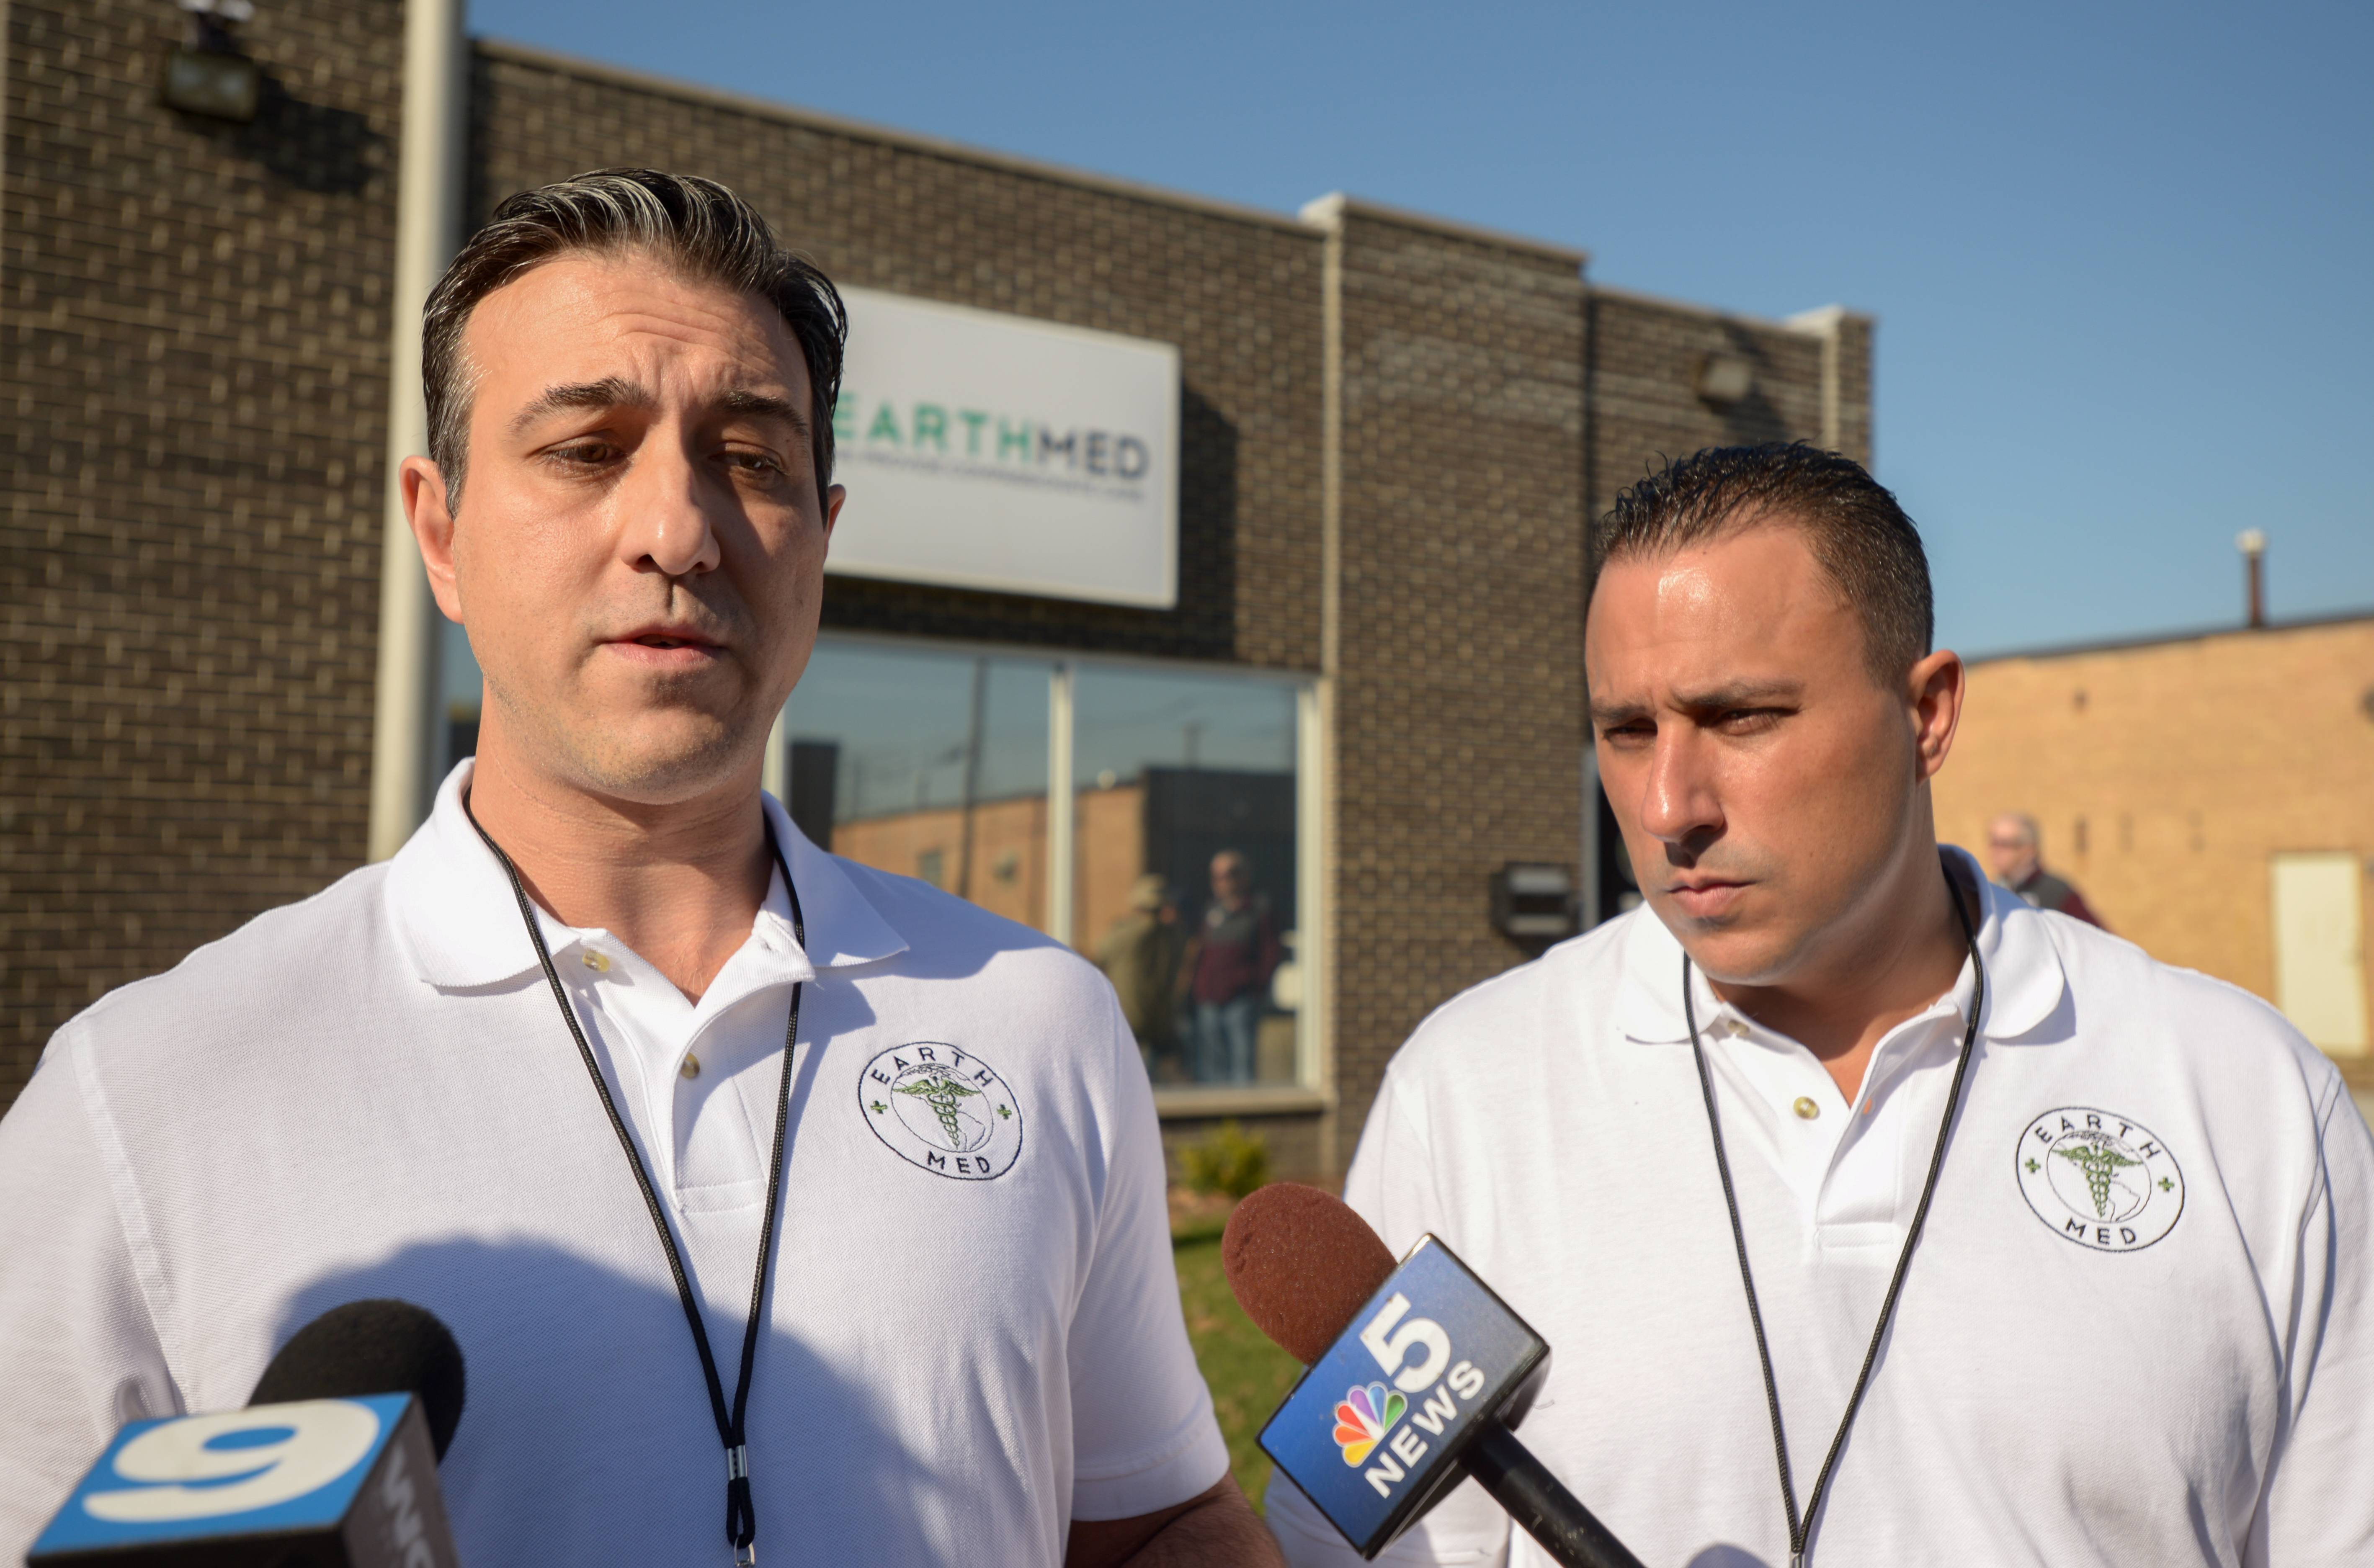 CEO Gus Koukoutsakis and CFO Michael Perez of Earth Med in Addison, talk to the media before opening their new medical marijuana dispensary.